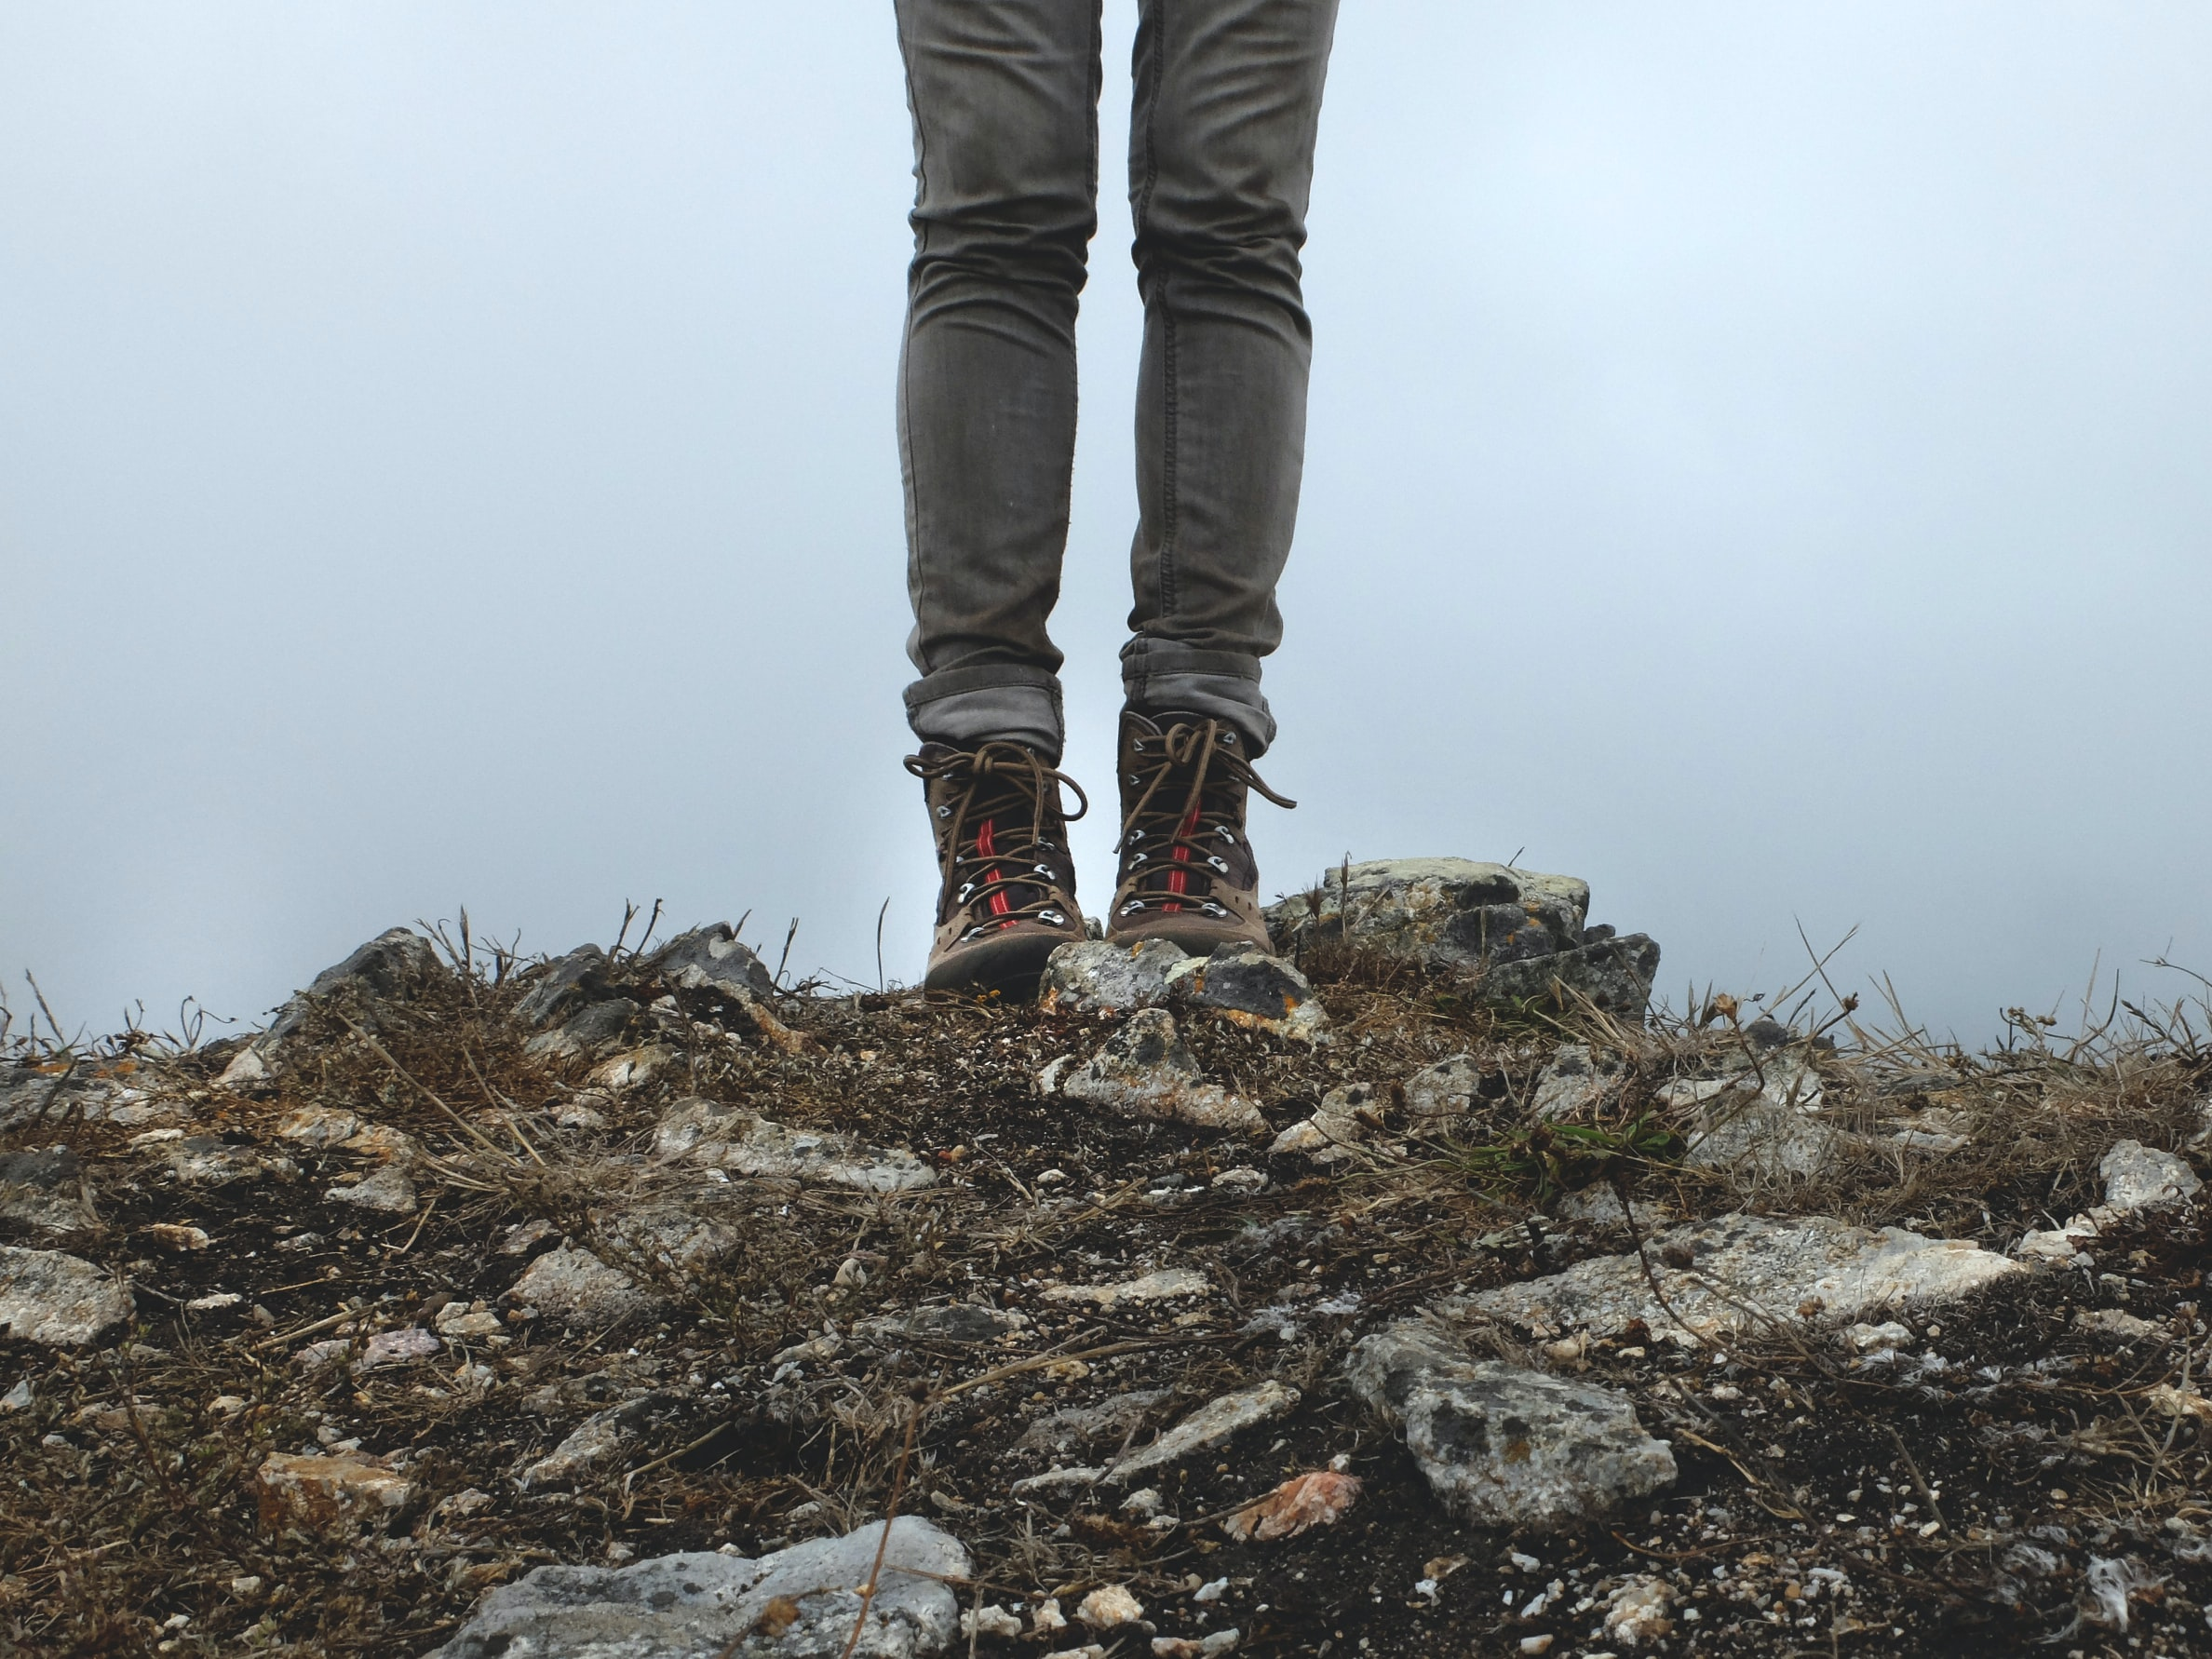 person in gray jeans standing on rocks during daytime